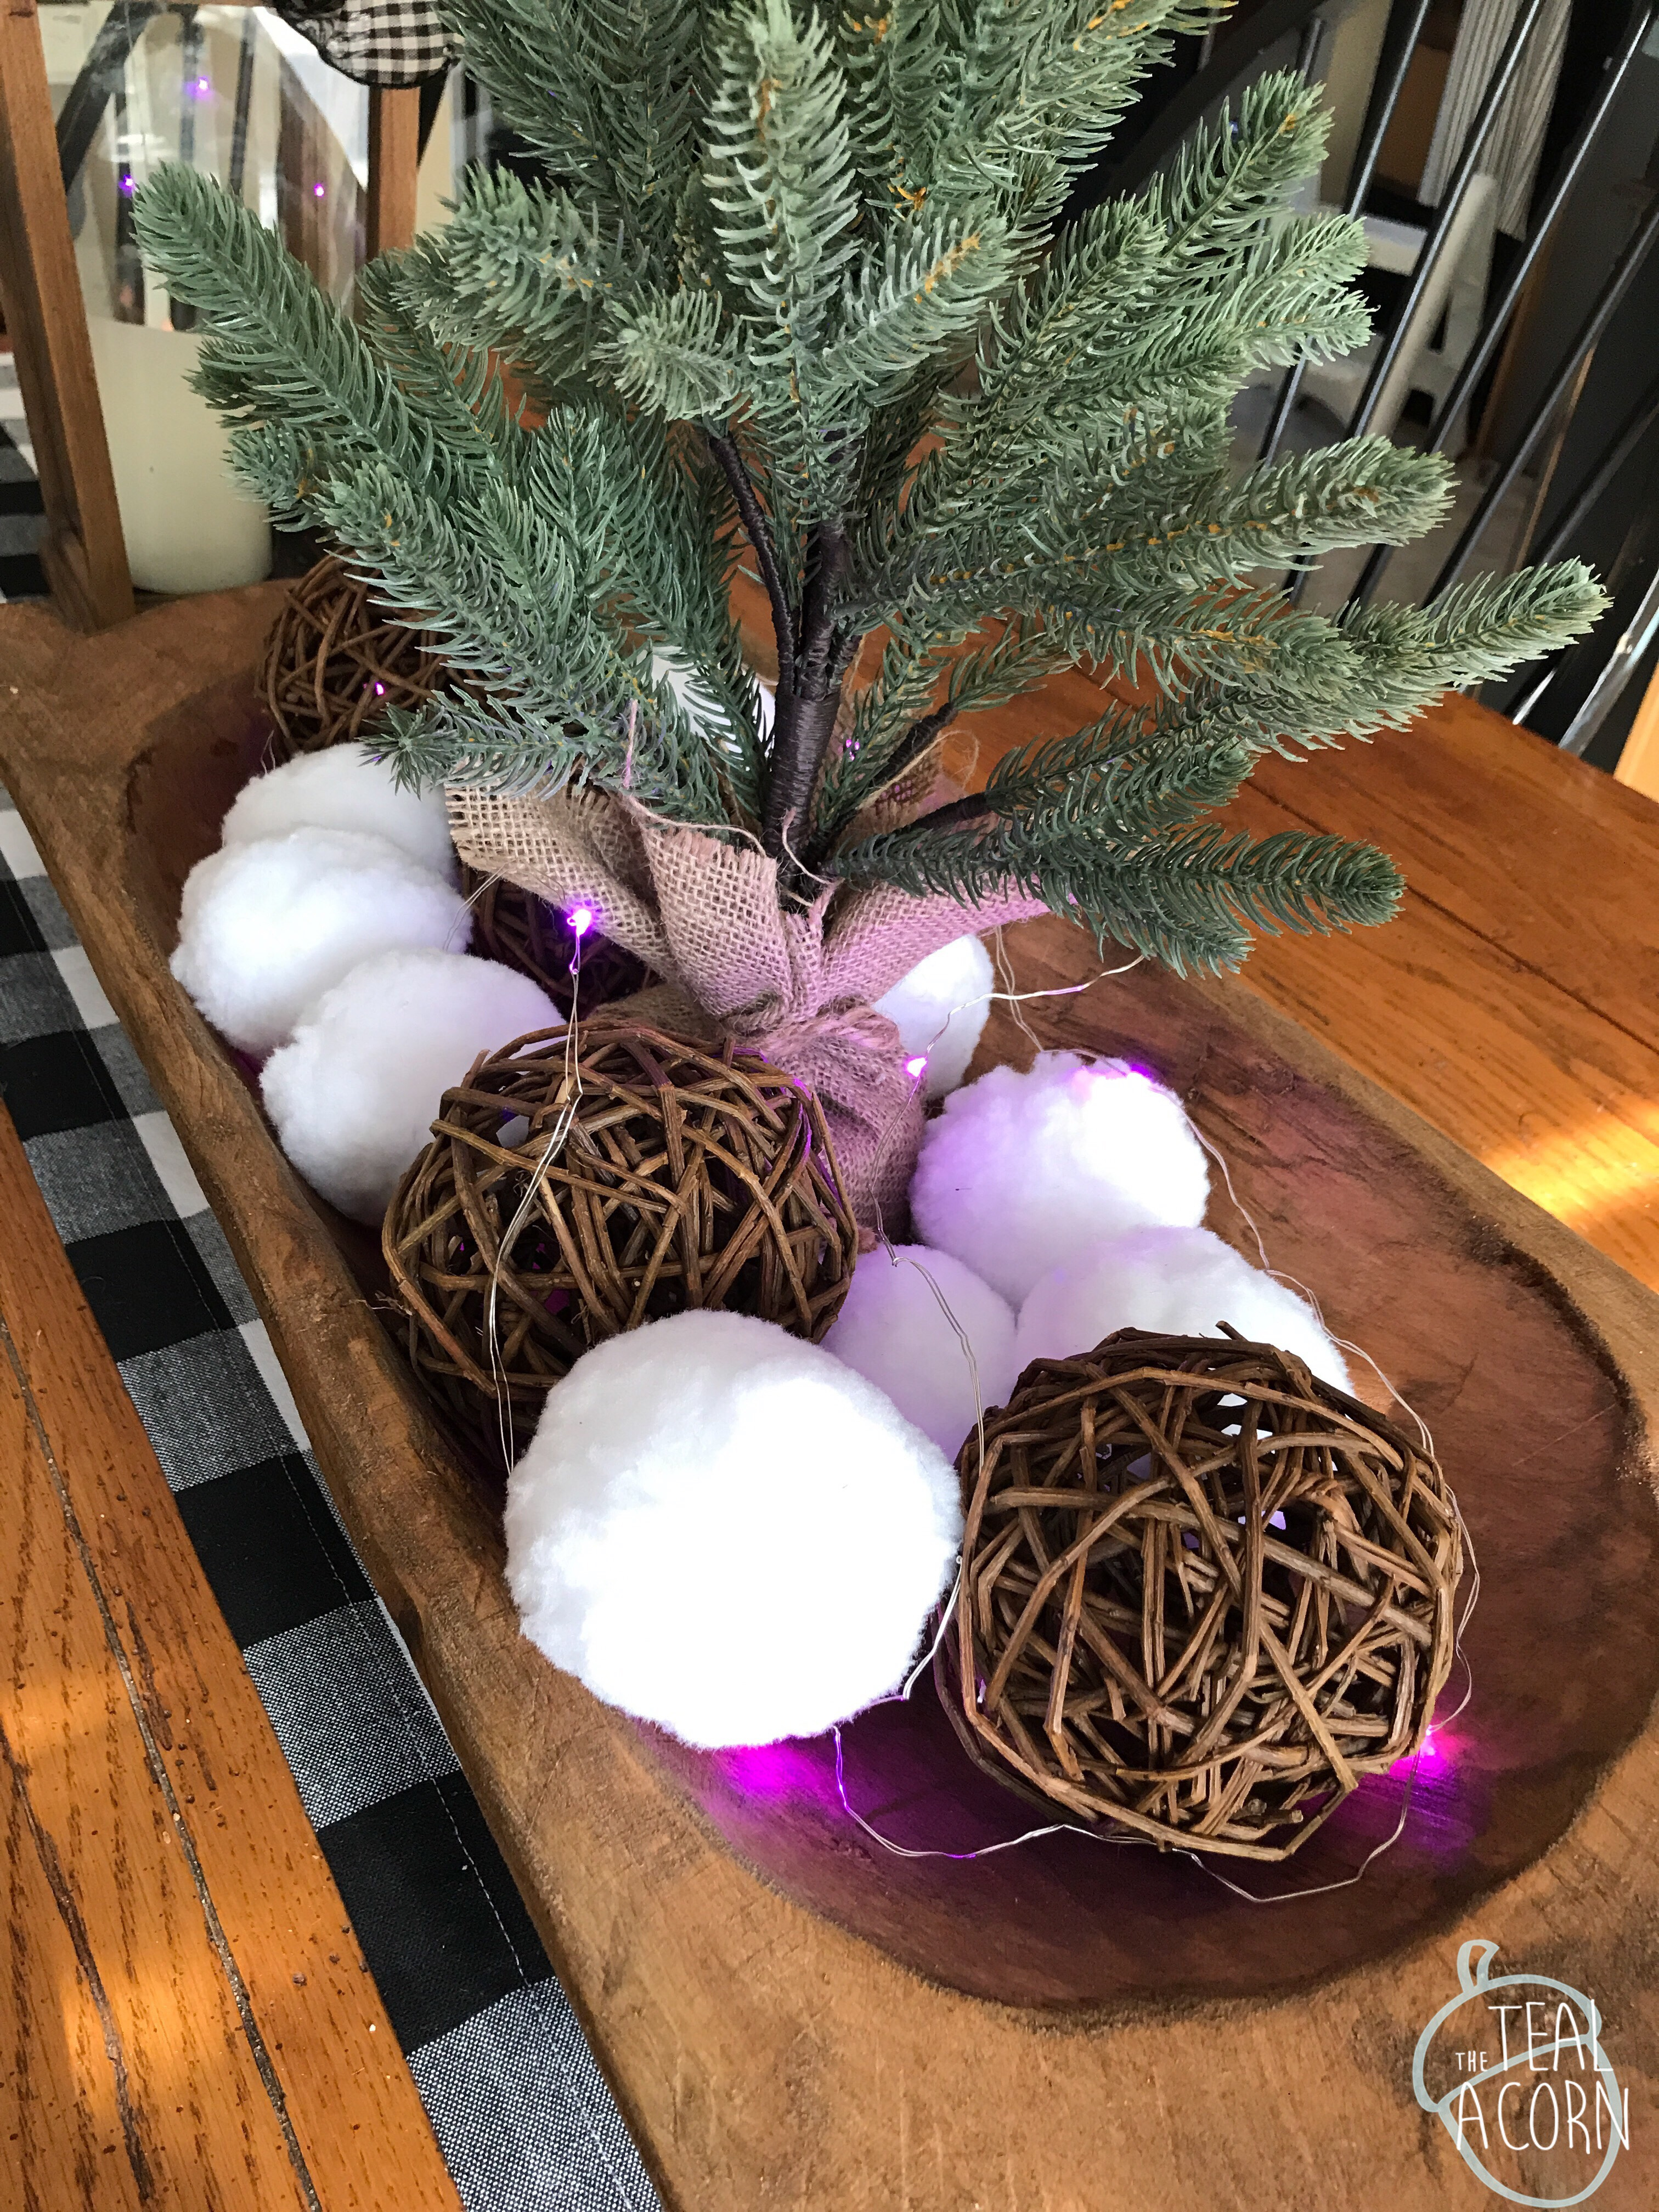 Decor steals dough bowl decorated for winter with faux snowballs and faux evergreen tree.  Pink fairy lights add a whimsical valentines day touch.